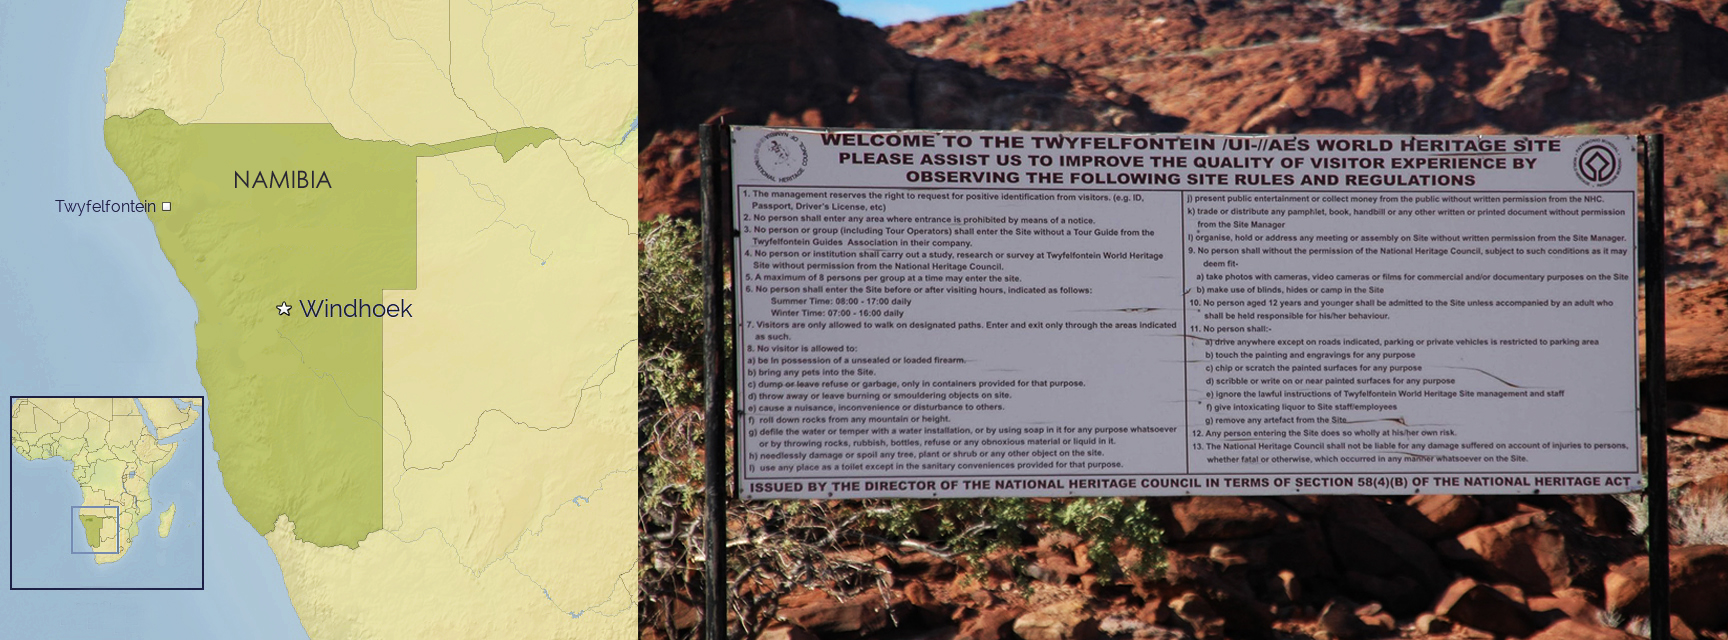 Twyfelfontein in Namibia, Africa, petroglyphs and carvings